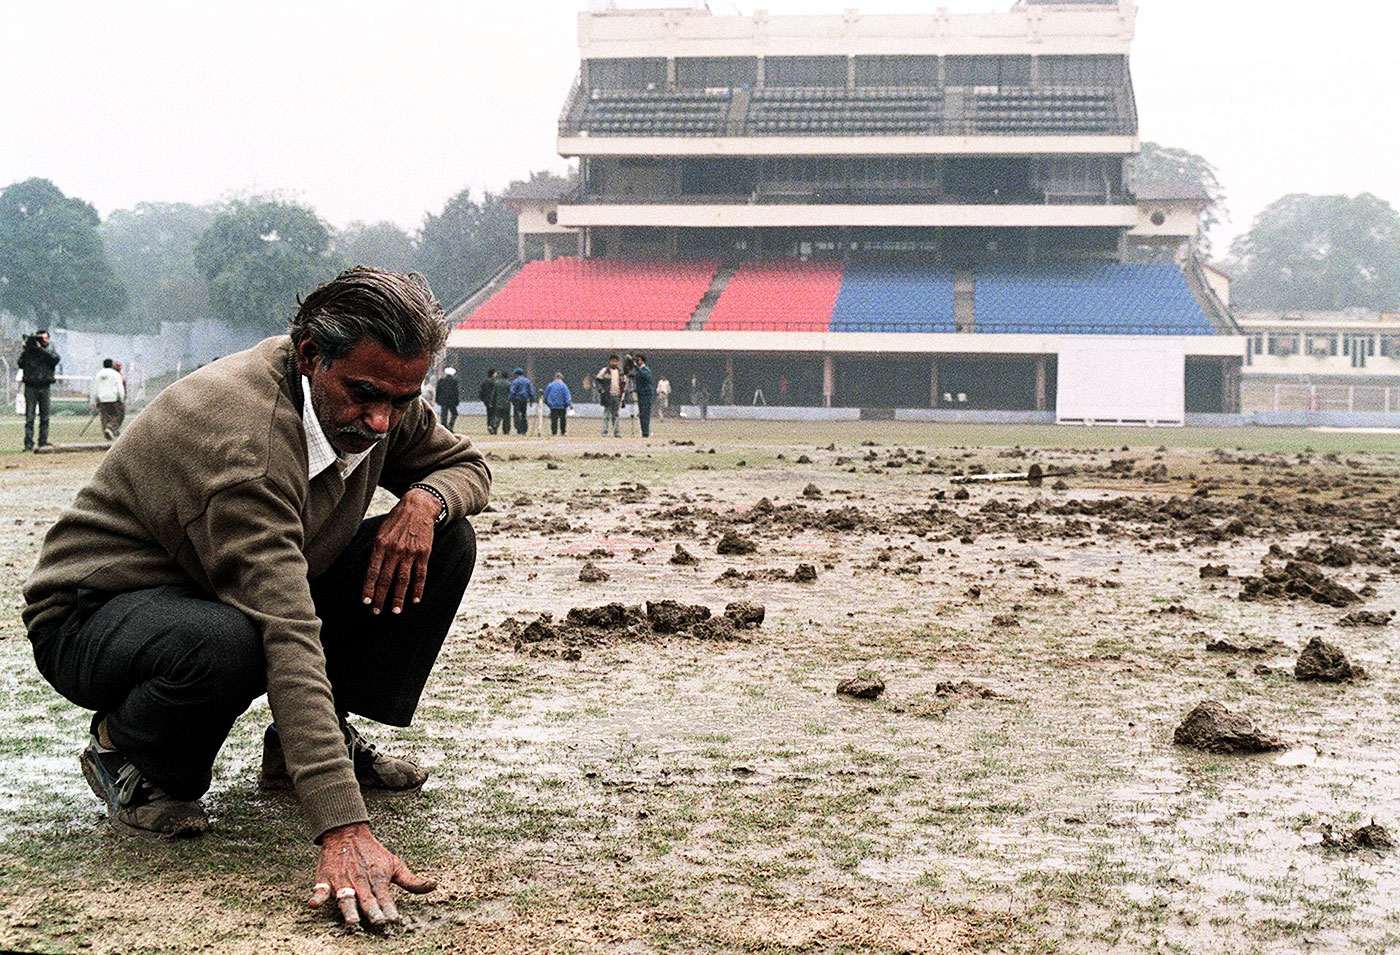 The Delhi pitch was dug up by vandals about a month before the Test there, which was scheduled to be the first match of the series